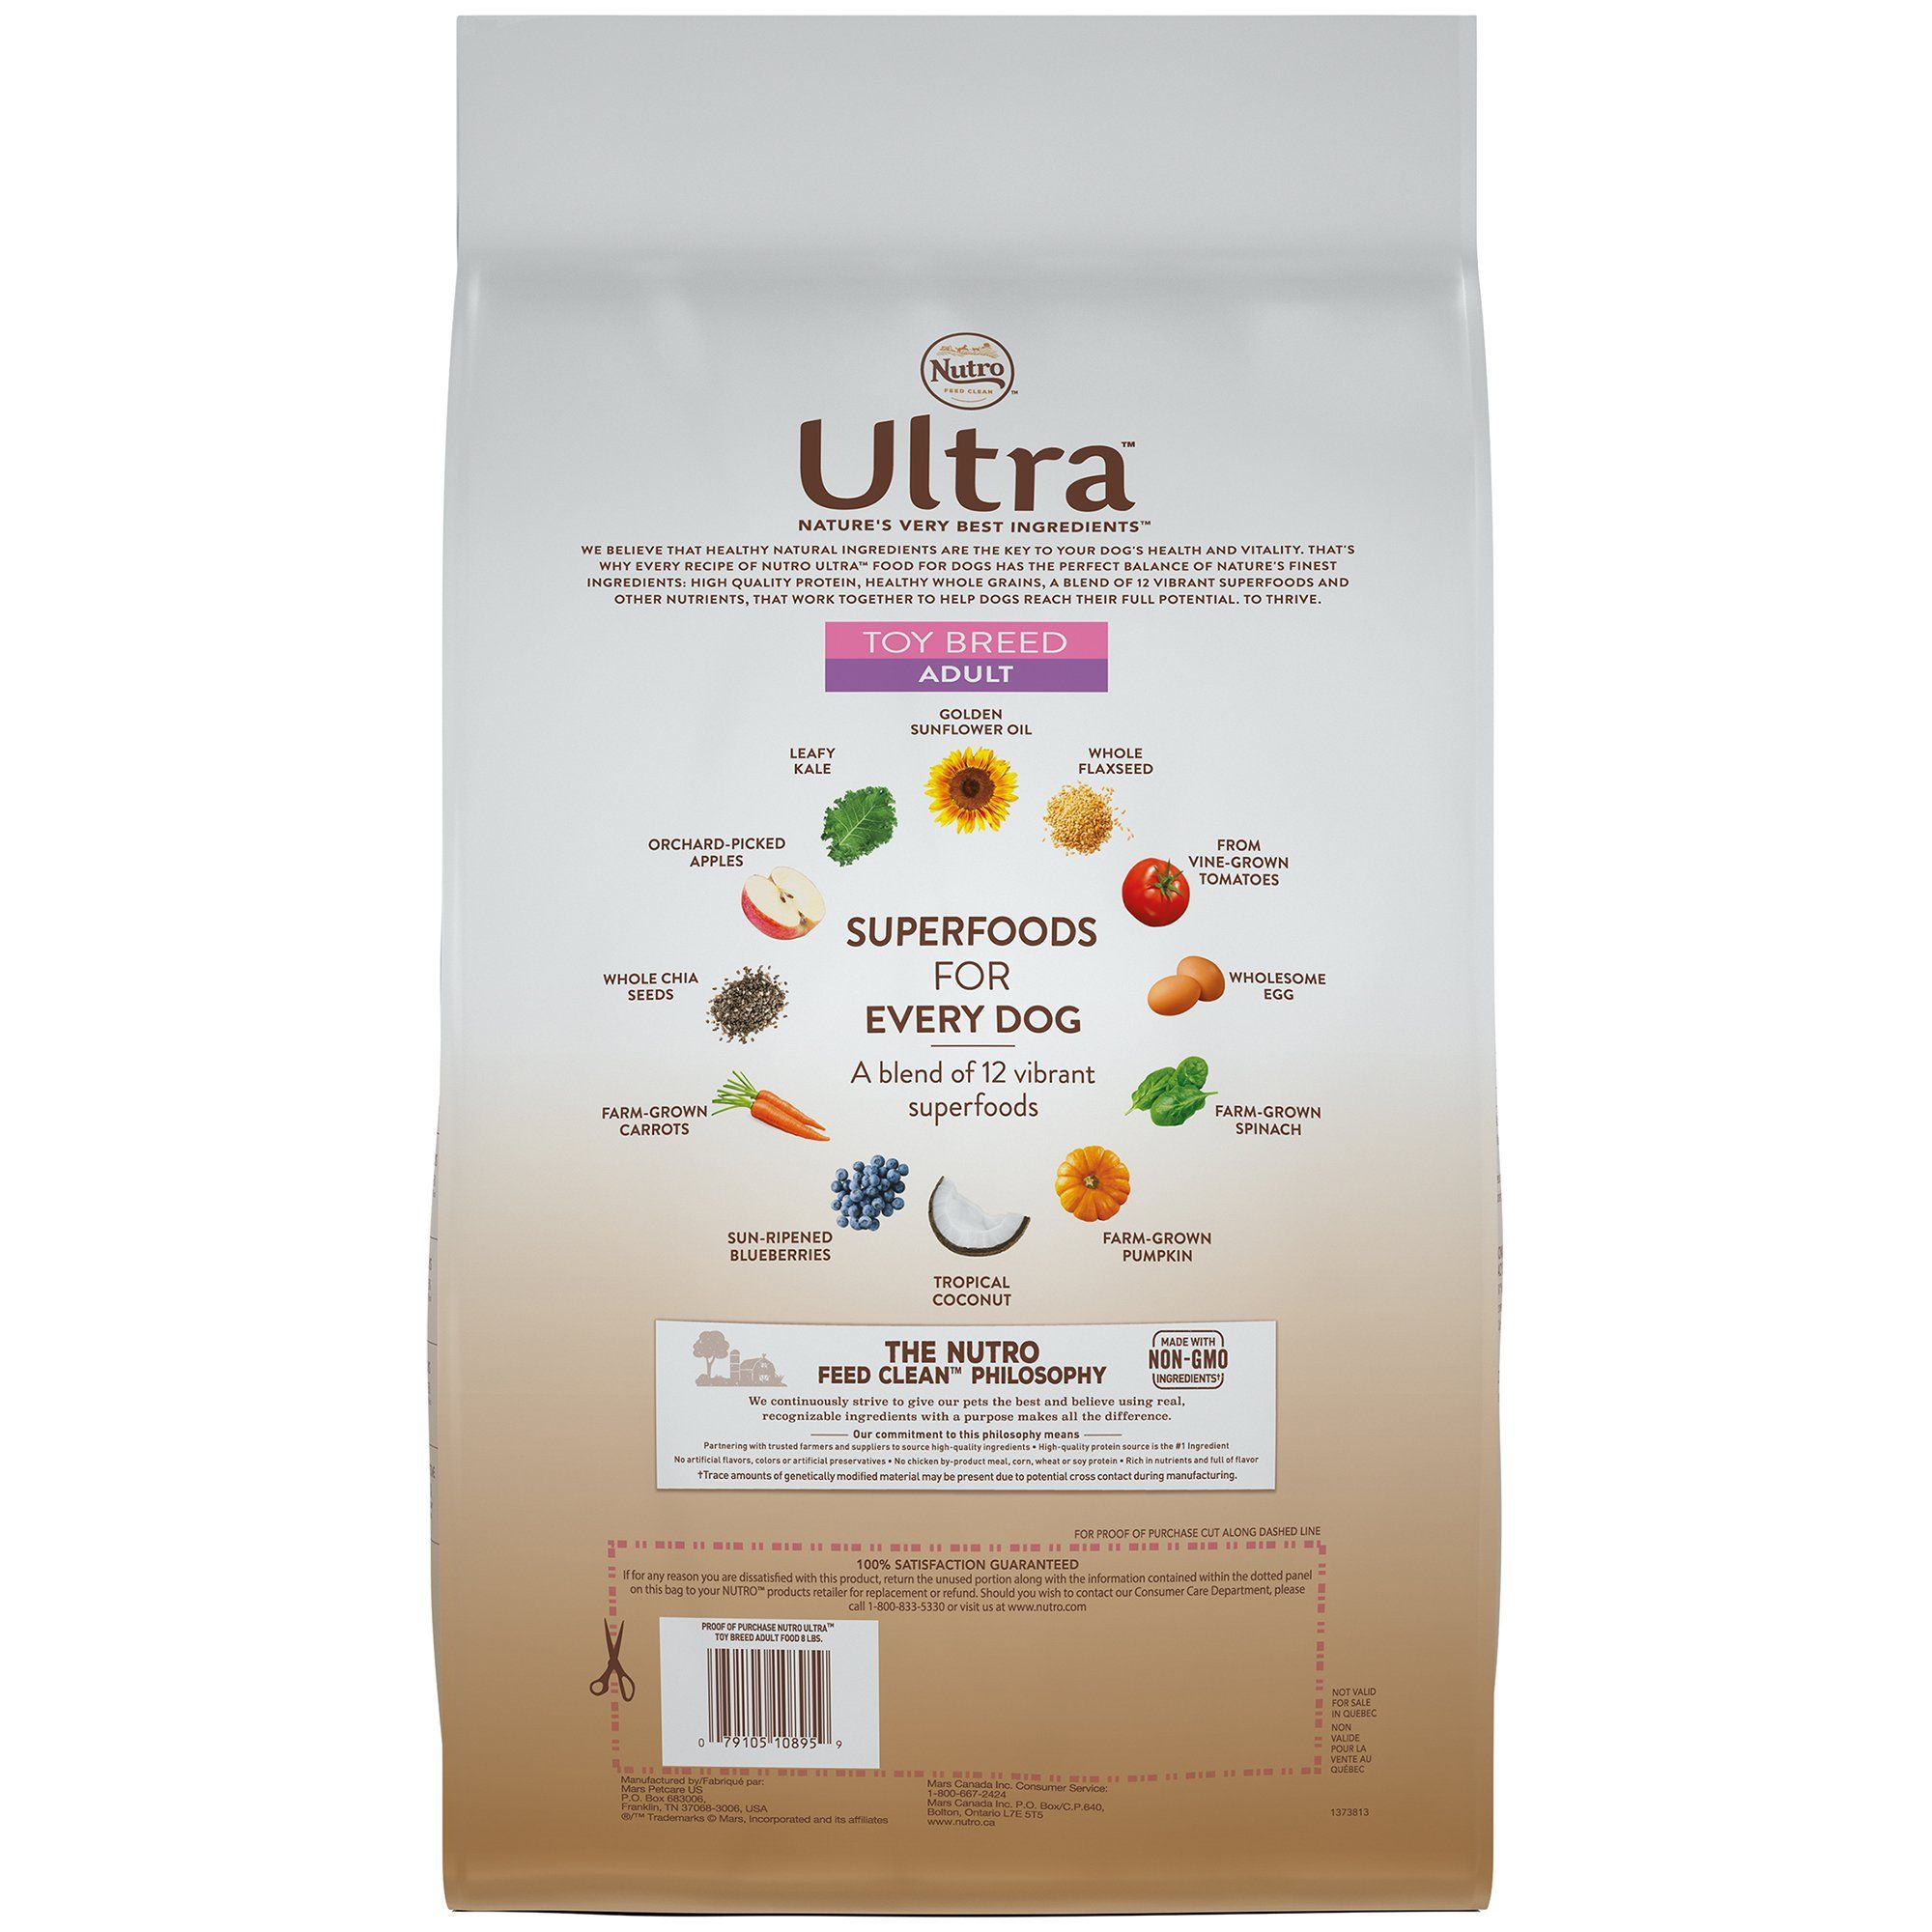 Nutro ultra toy breed adult dry dog food 1 8 lbs